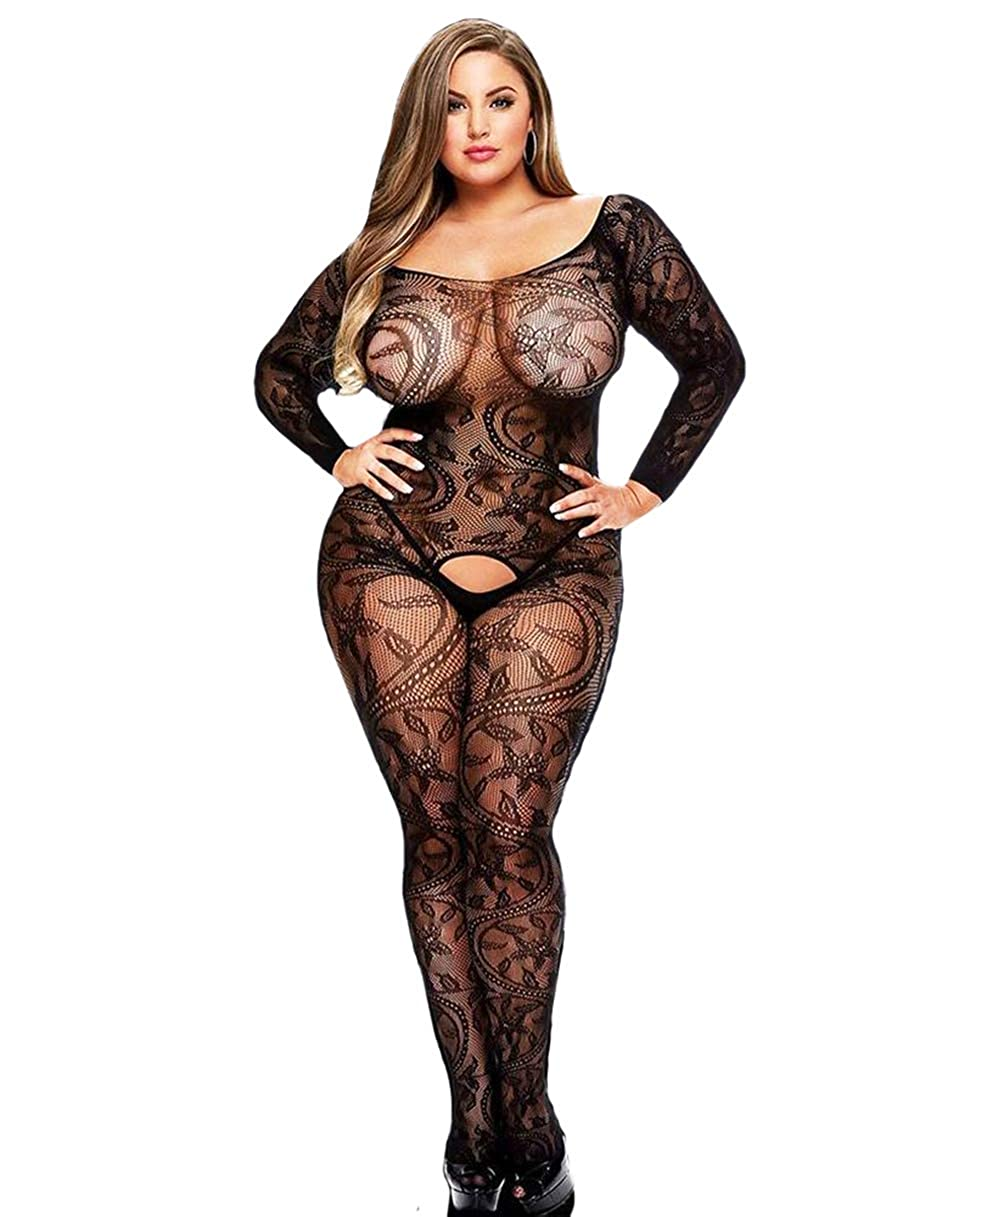 4ffd4ebdc6 Amazon.com  Curbigals Sexy Women Lingerie Plus Size Crotchless Bodystocking  Long Sleeves Bodysuit  Clothing